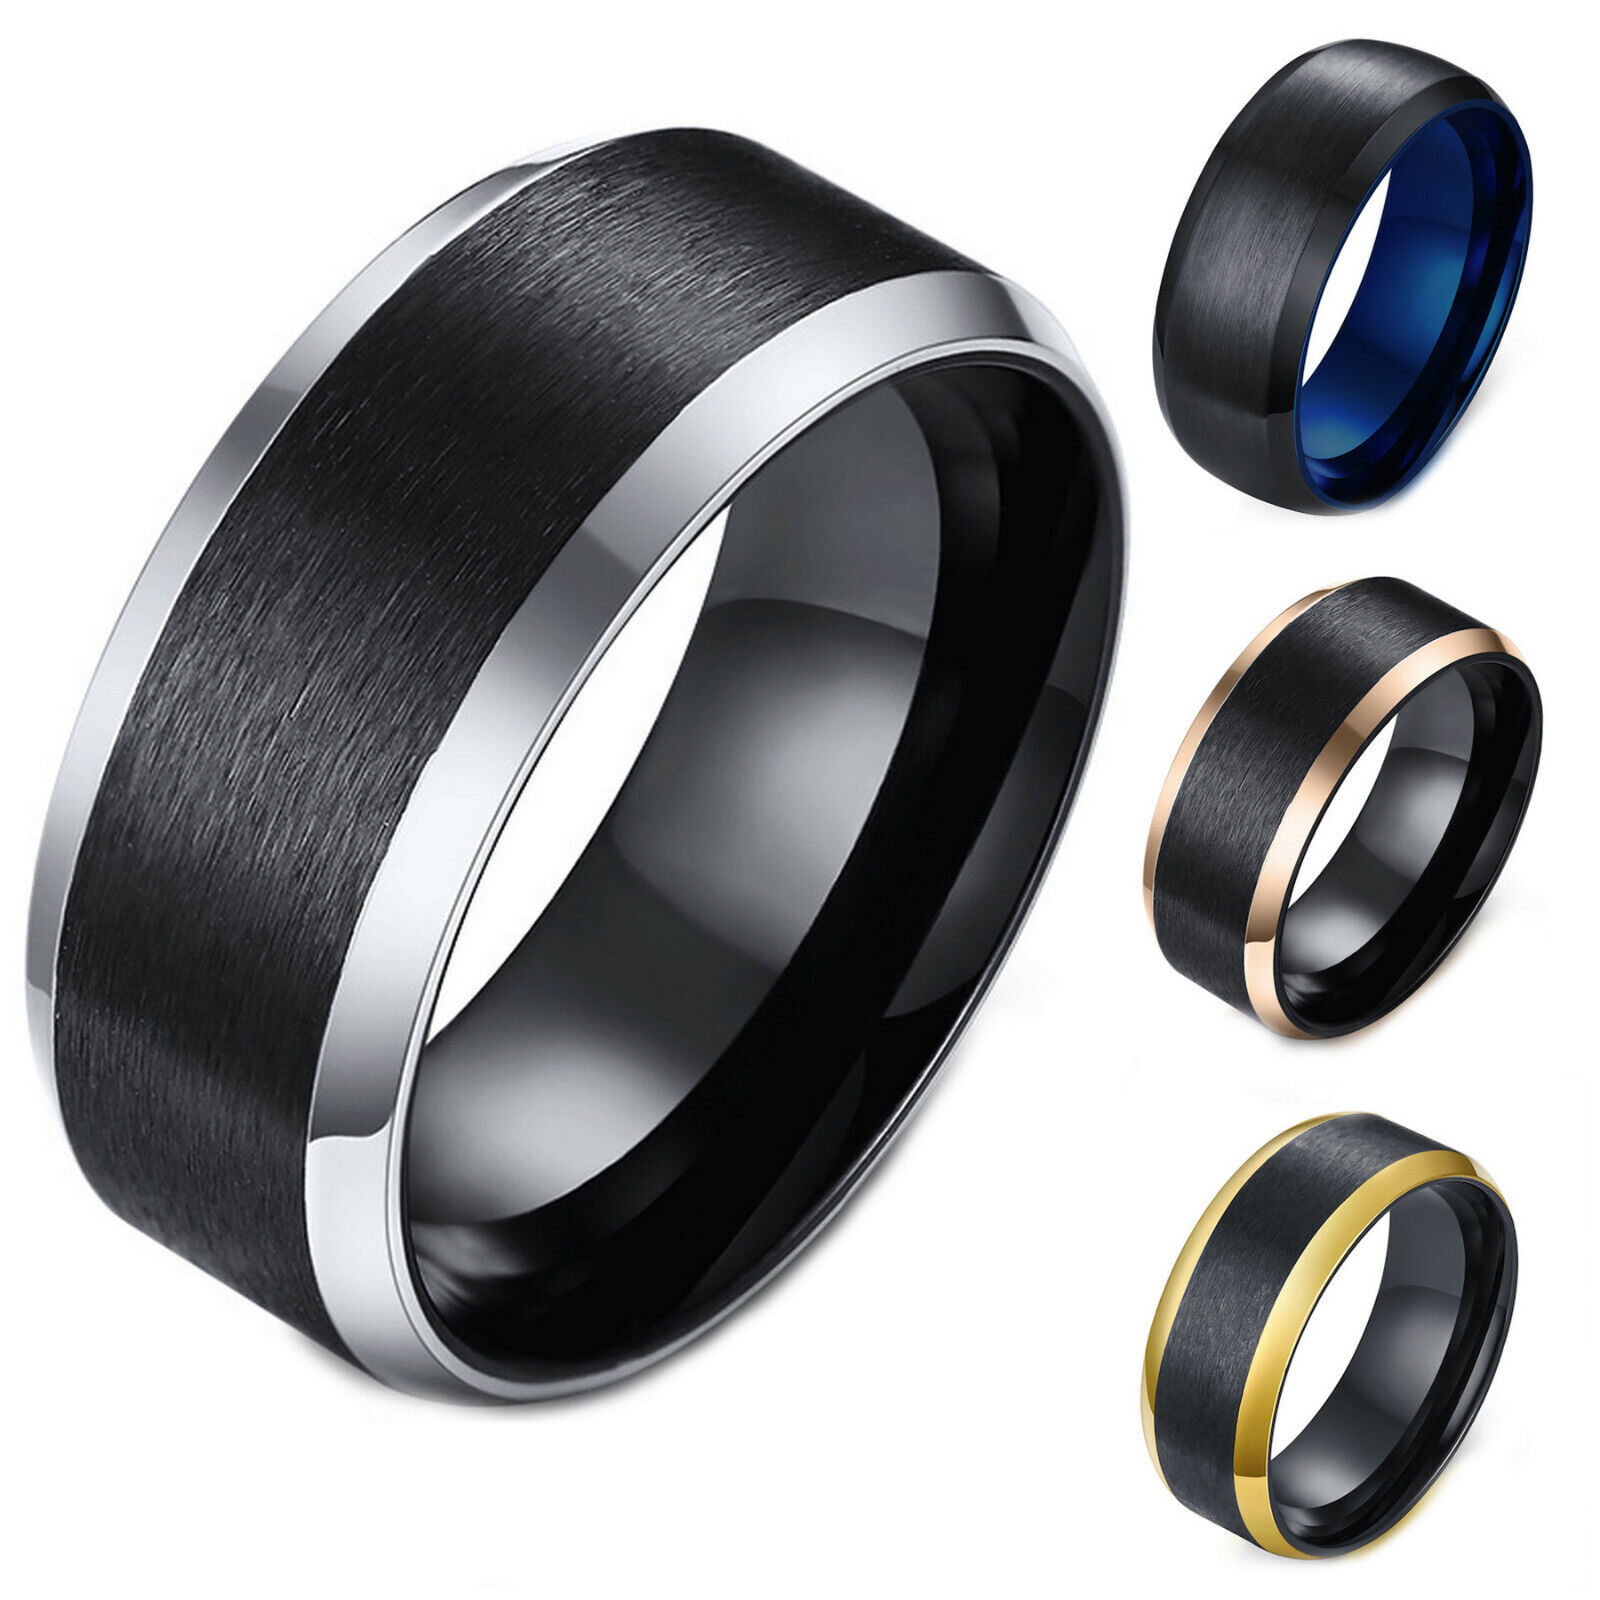 Men's Ring Stainless Steel 2-Tone Matte Finished Comfort Fit Wedding Band Jewelry & Watches